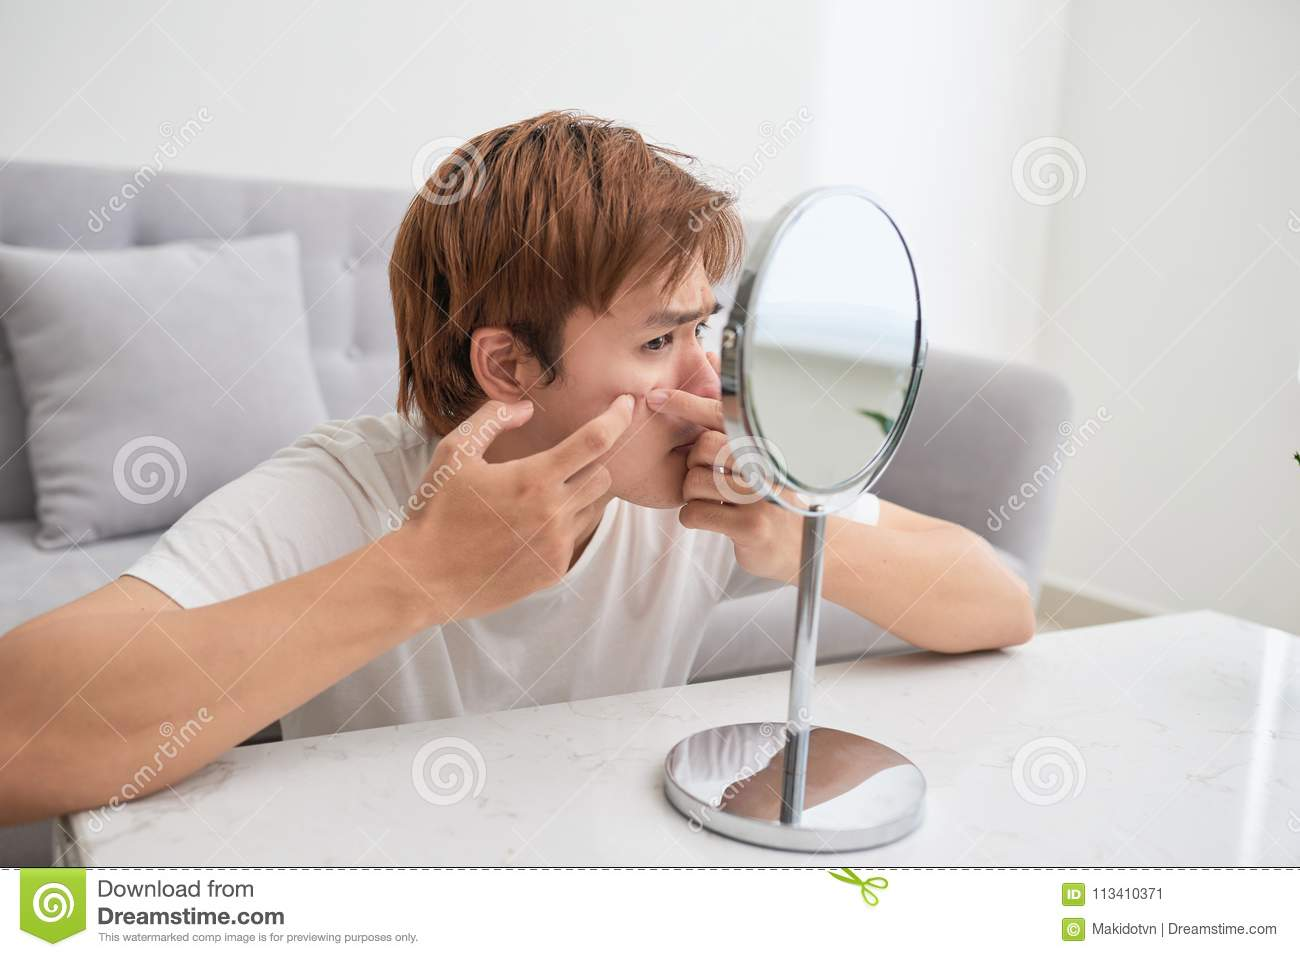 Asian man looking at mirror and popping a pimple